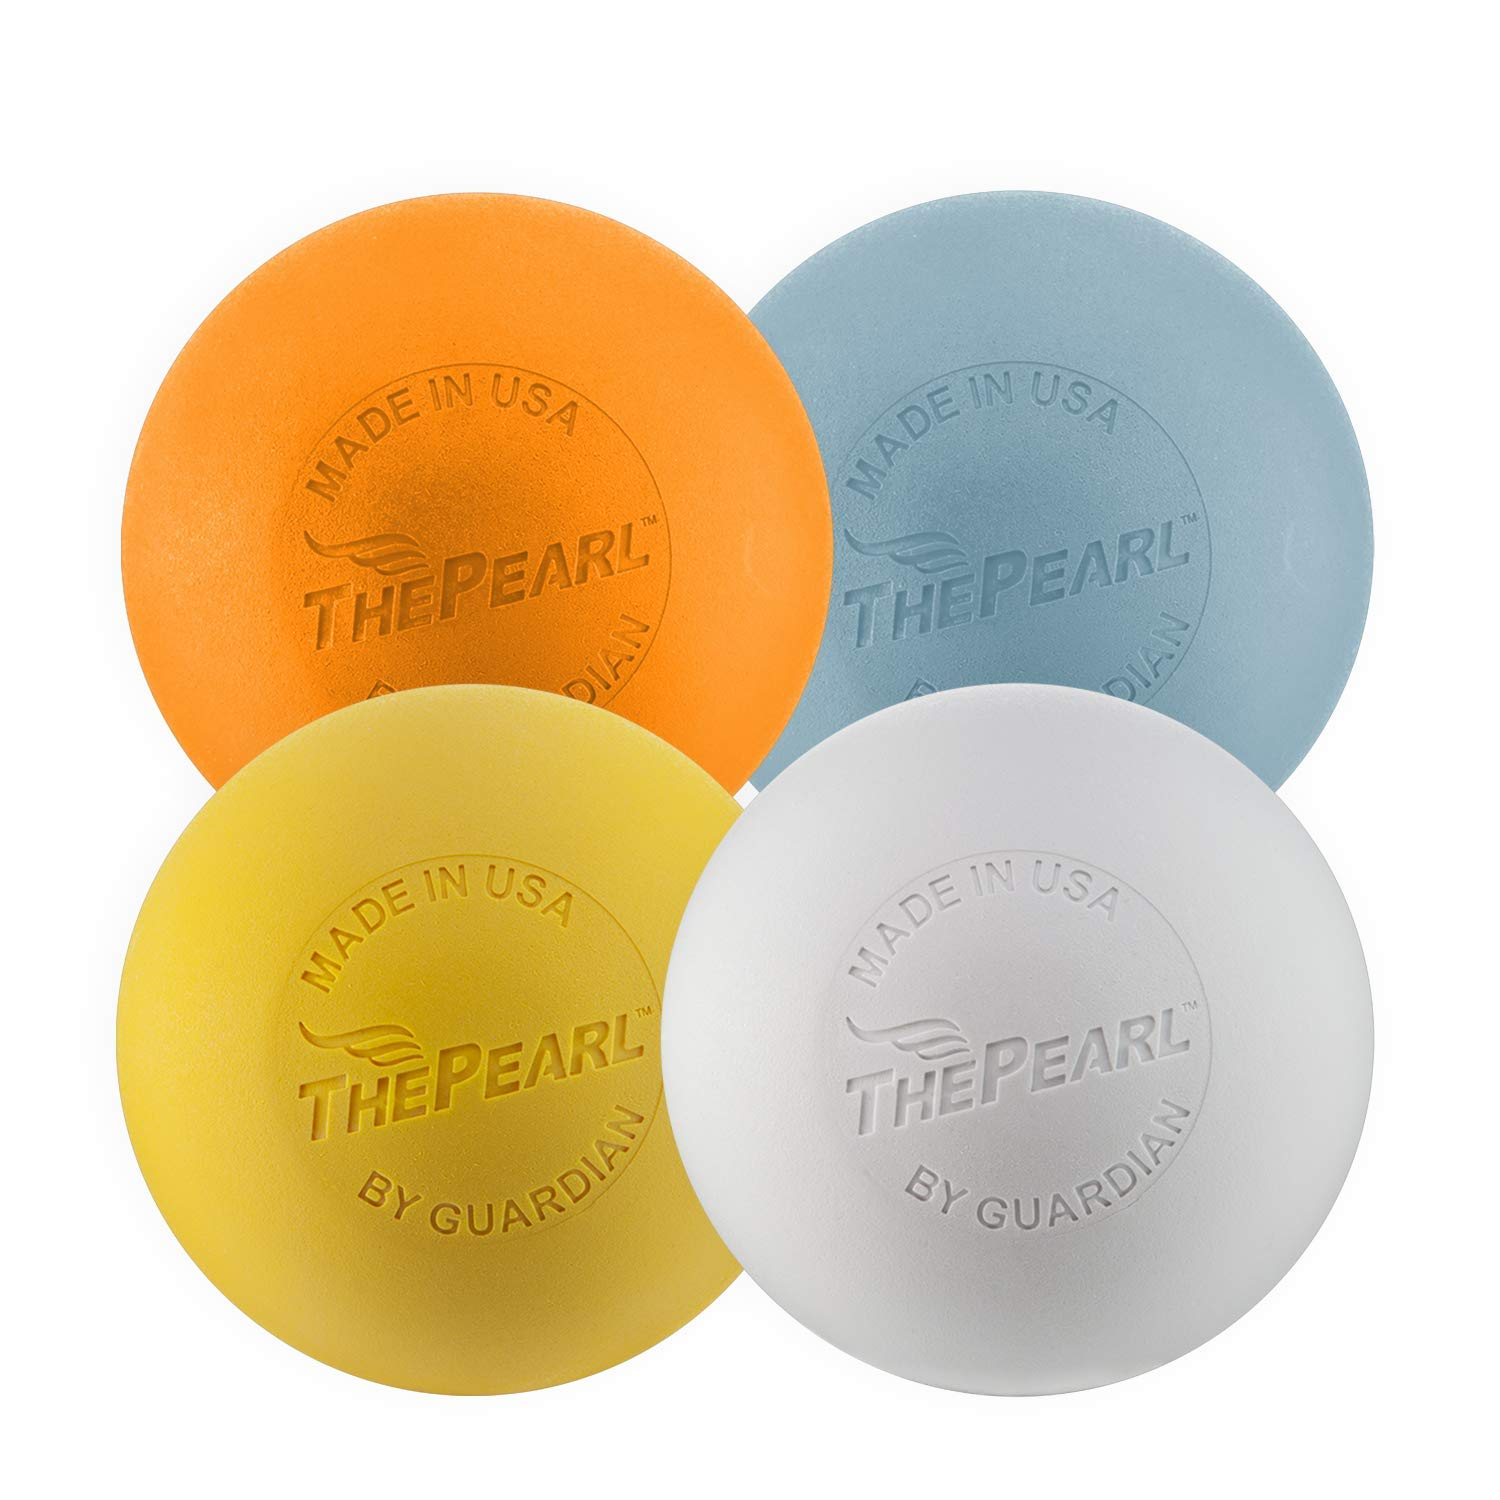 Guardian Innovations The Pearl - Greaseless Lacrosse Balls (White, Yellow & Orange - NOCSAE/NCAA/NFHS Certified; Blue No-Bounce - Practice) - Official Ball of US Lacrosse & Team USA (Variety, 4 Pack)